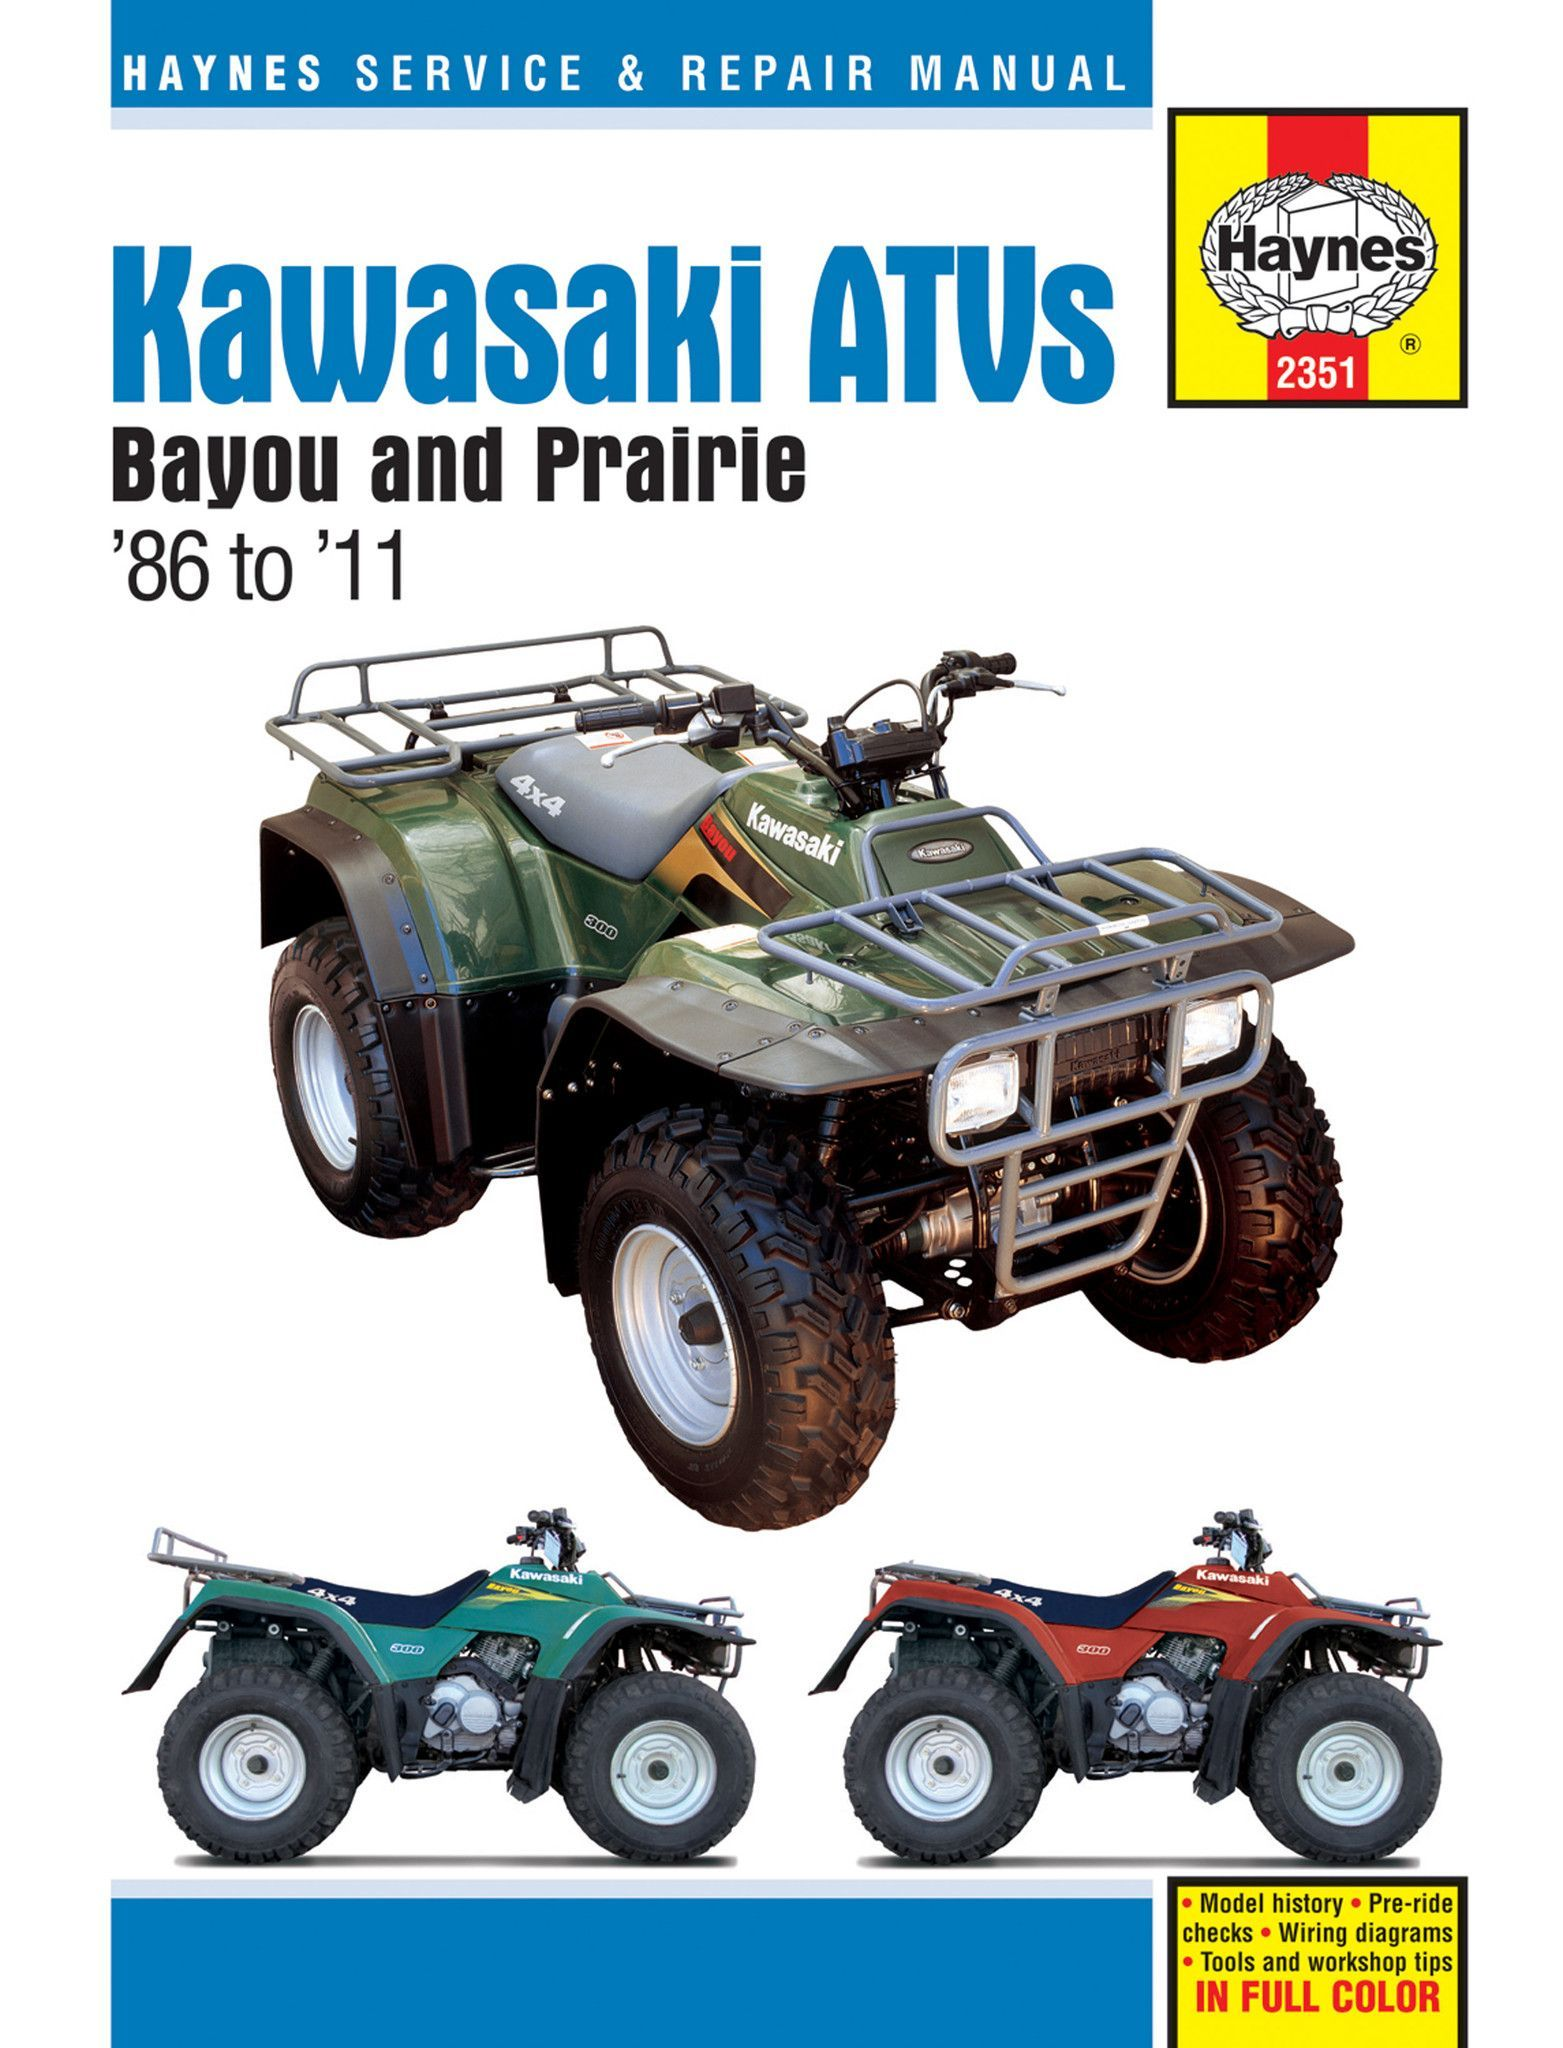 Haynes M2351 Repair Manual for 1986-11 Kawasaki Bayou / Prairie